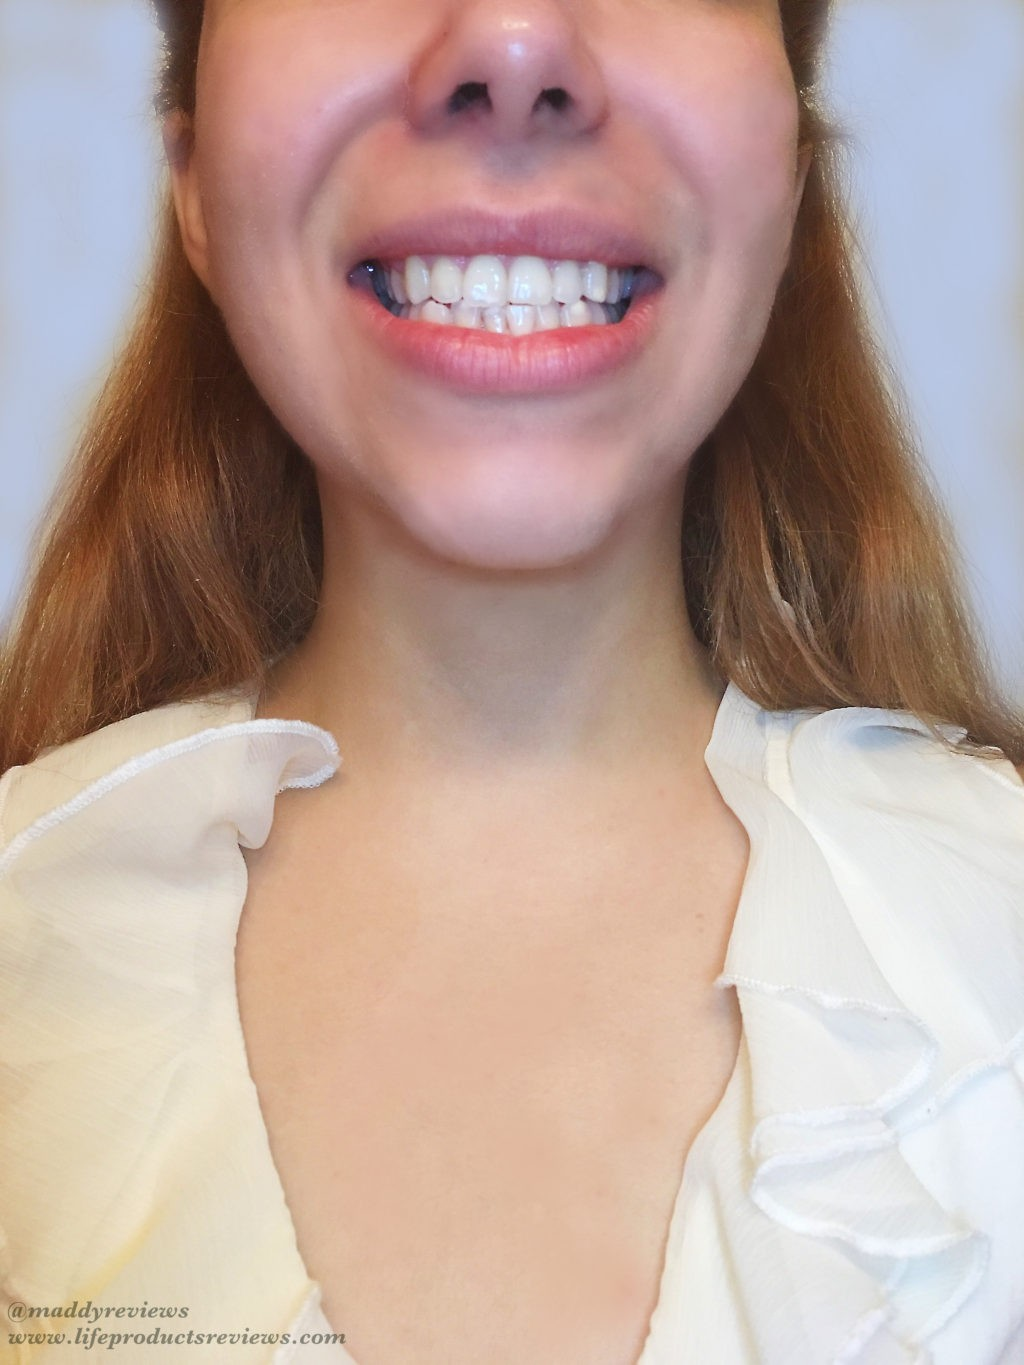 After-yellow-stain-teeth-results-front-smile-brilliant-pearly-whites-whitening-effect.jpg